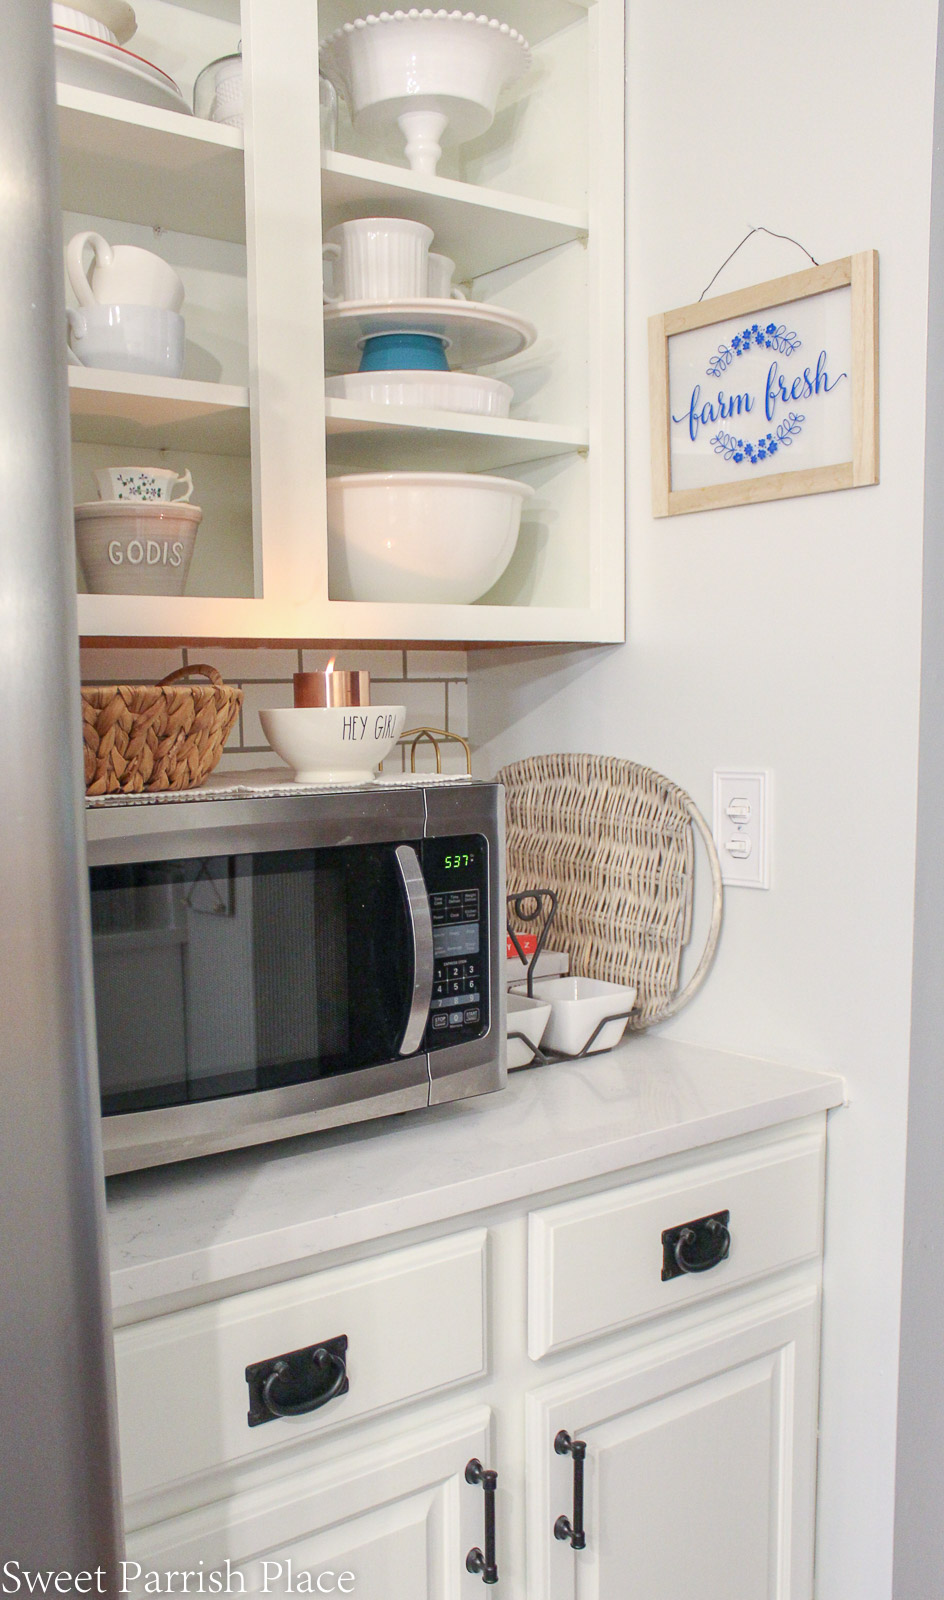 open shelving created by removing cabinet doors